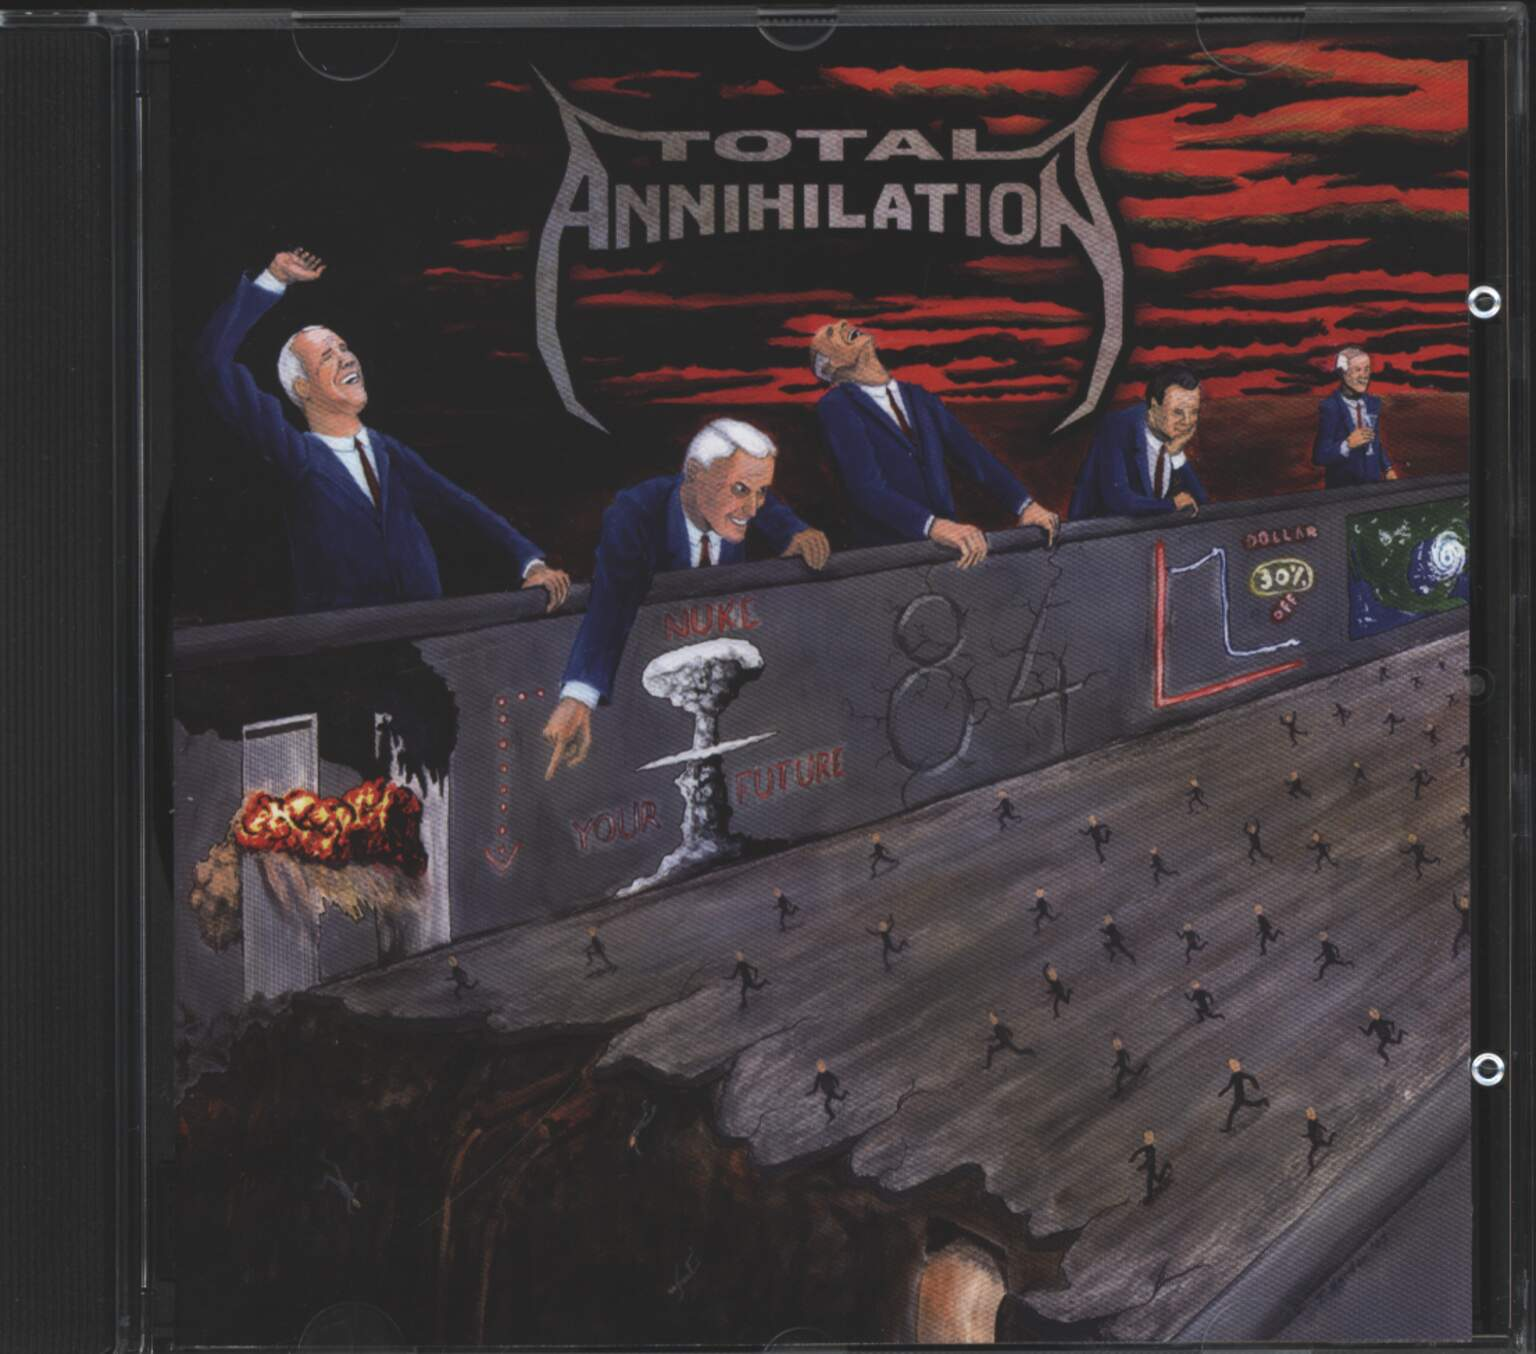 Total Annihilation: 84, 1×CD